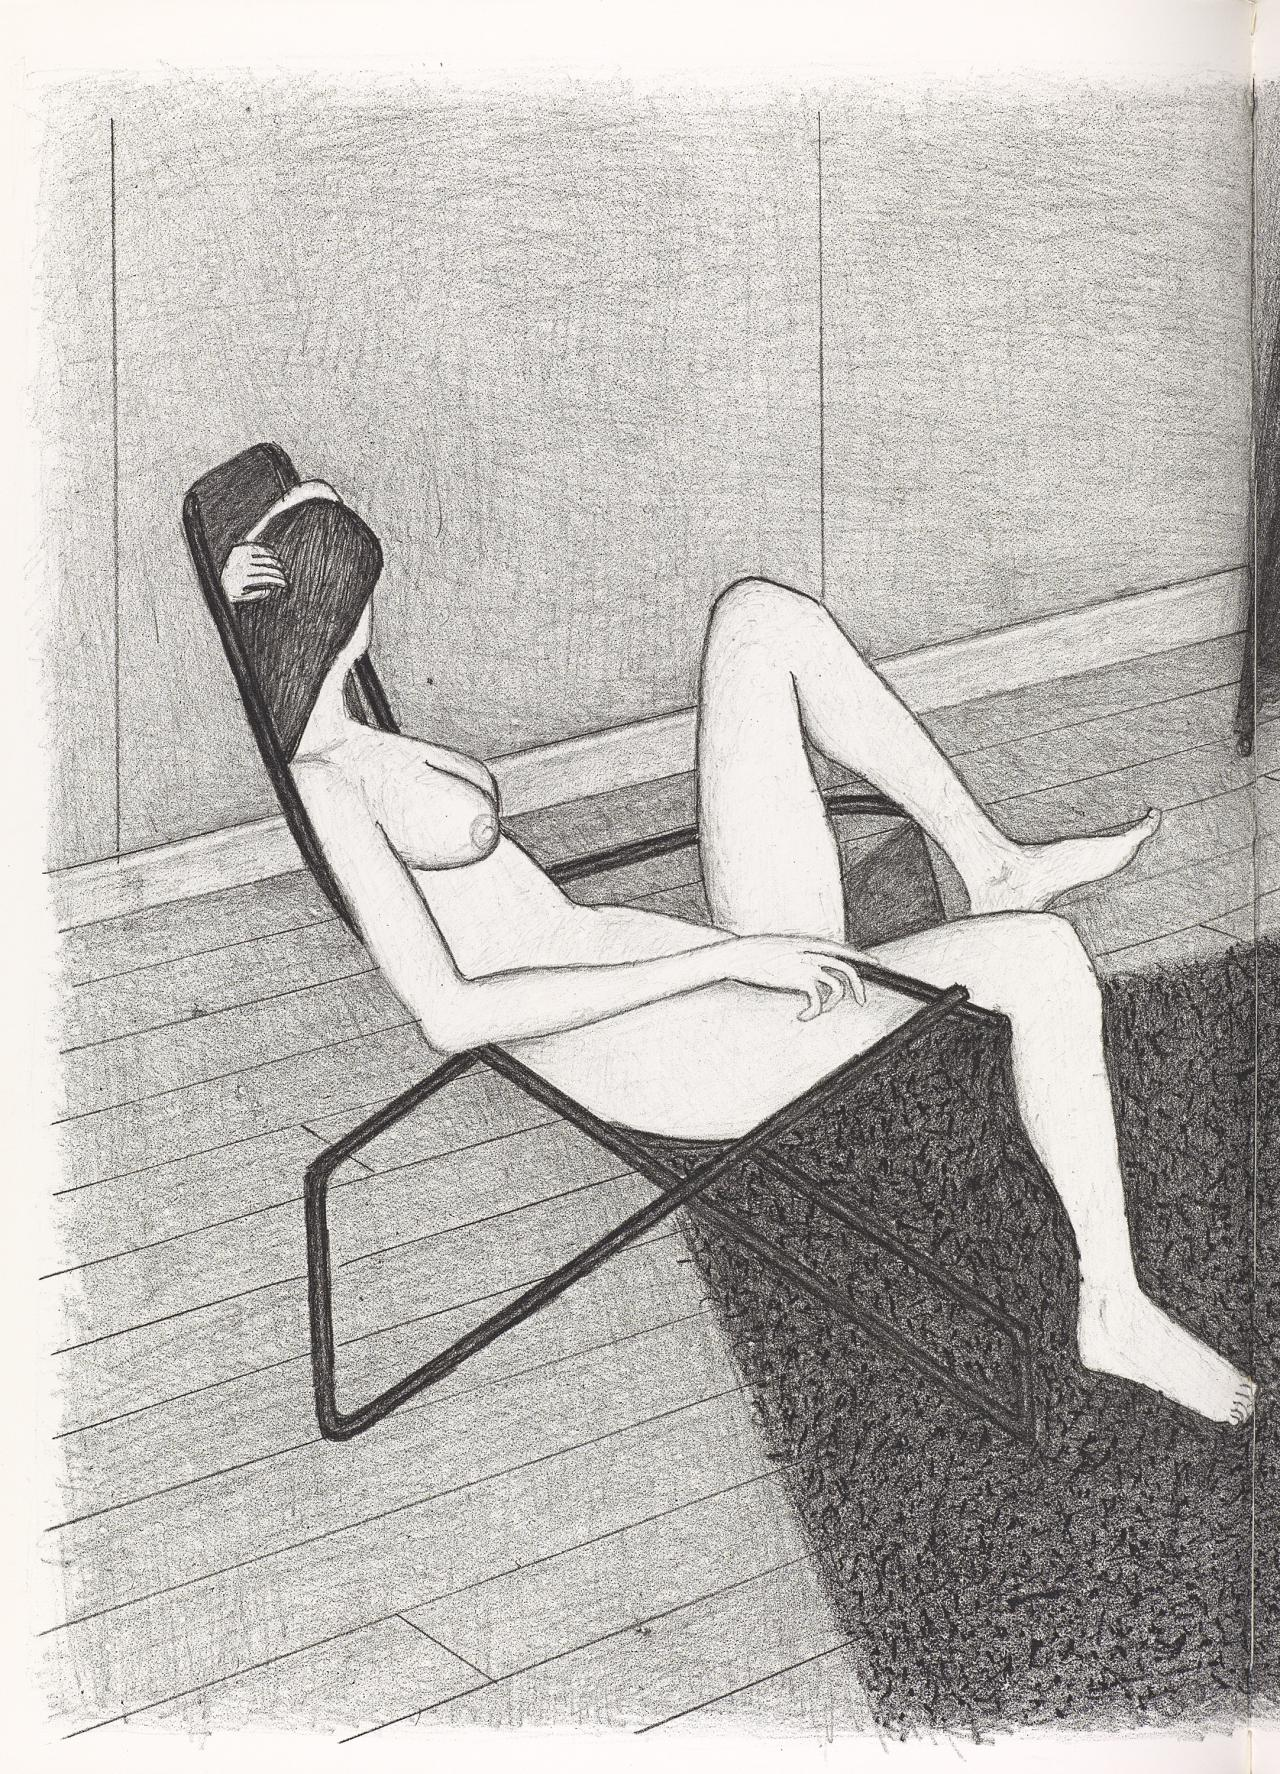 (Nude seated on beach chair with raised knee, facing away, with robe on chair, on shag rug)